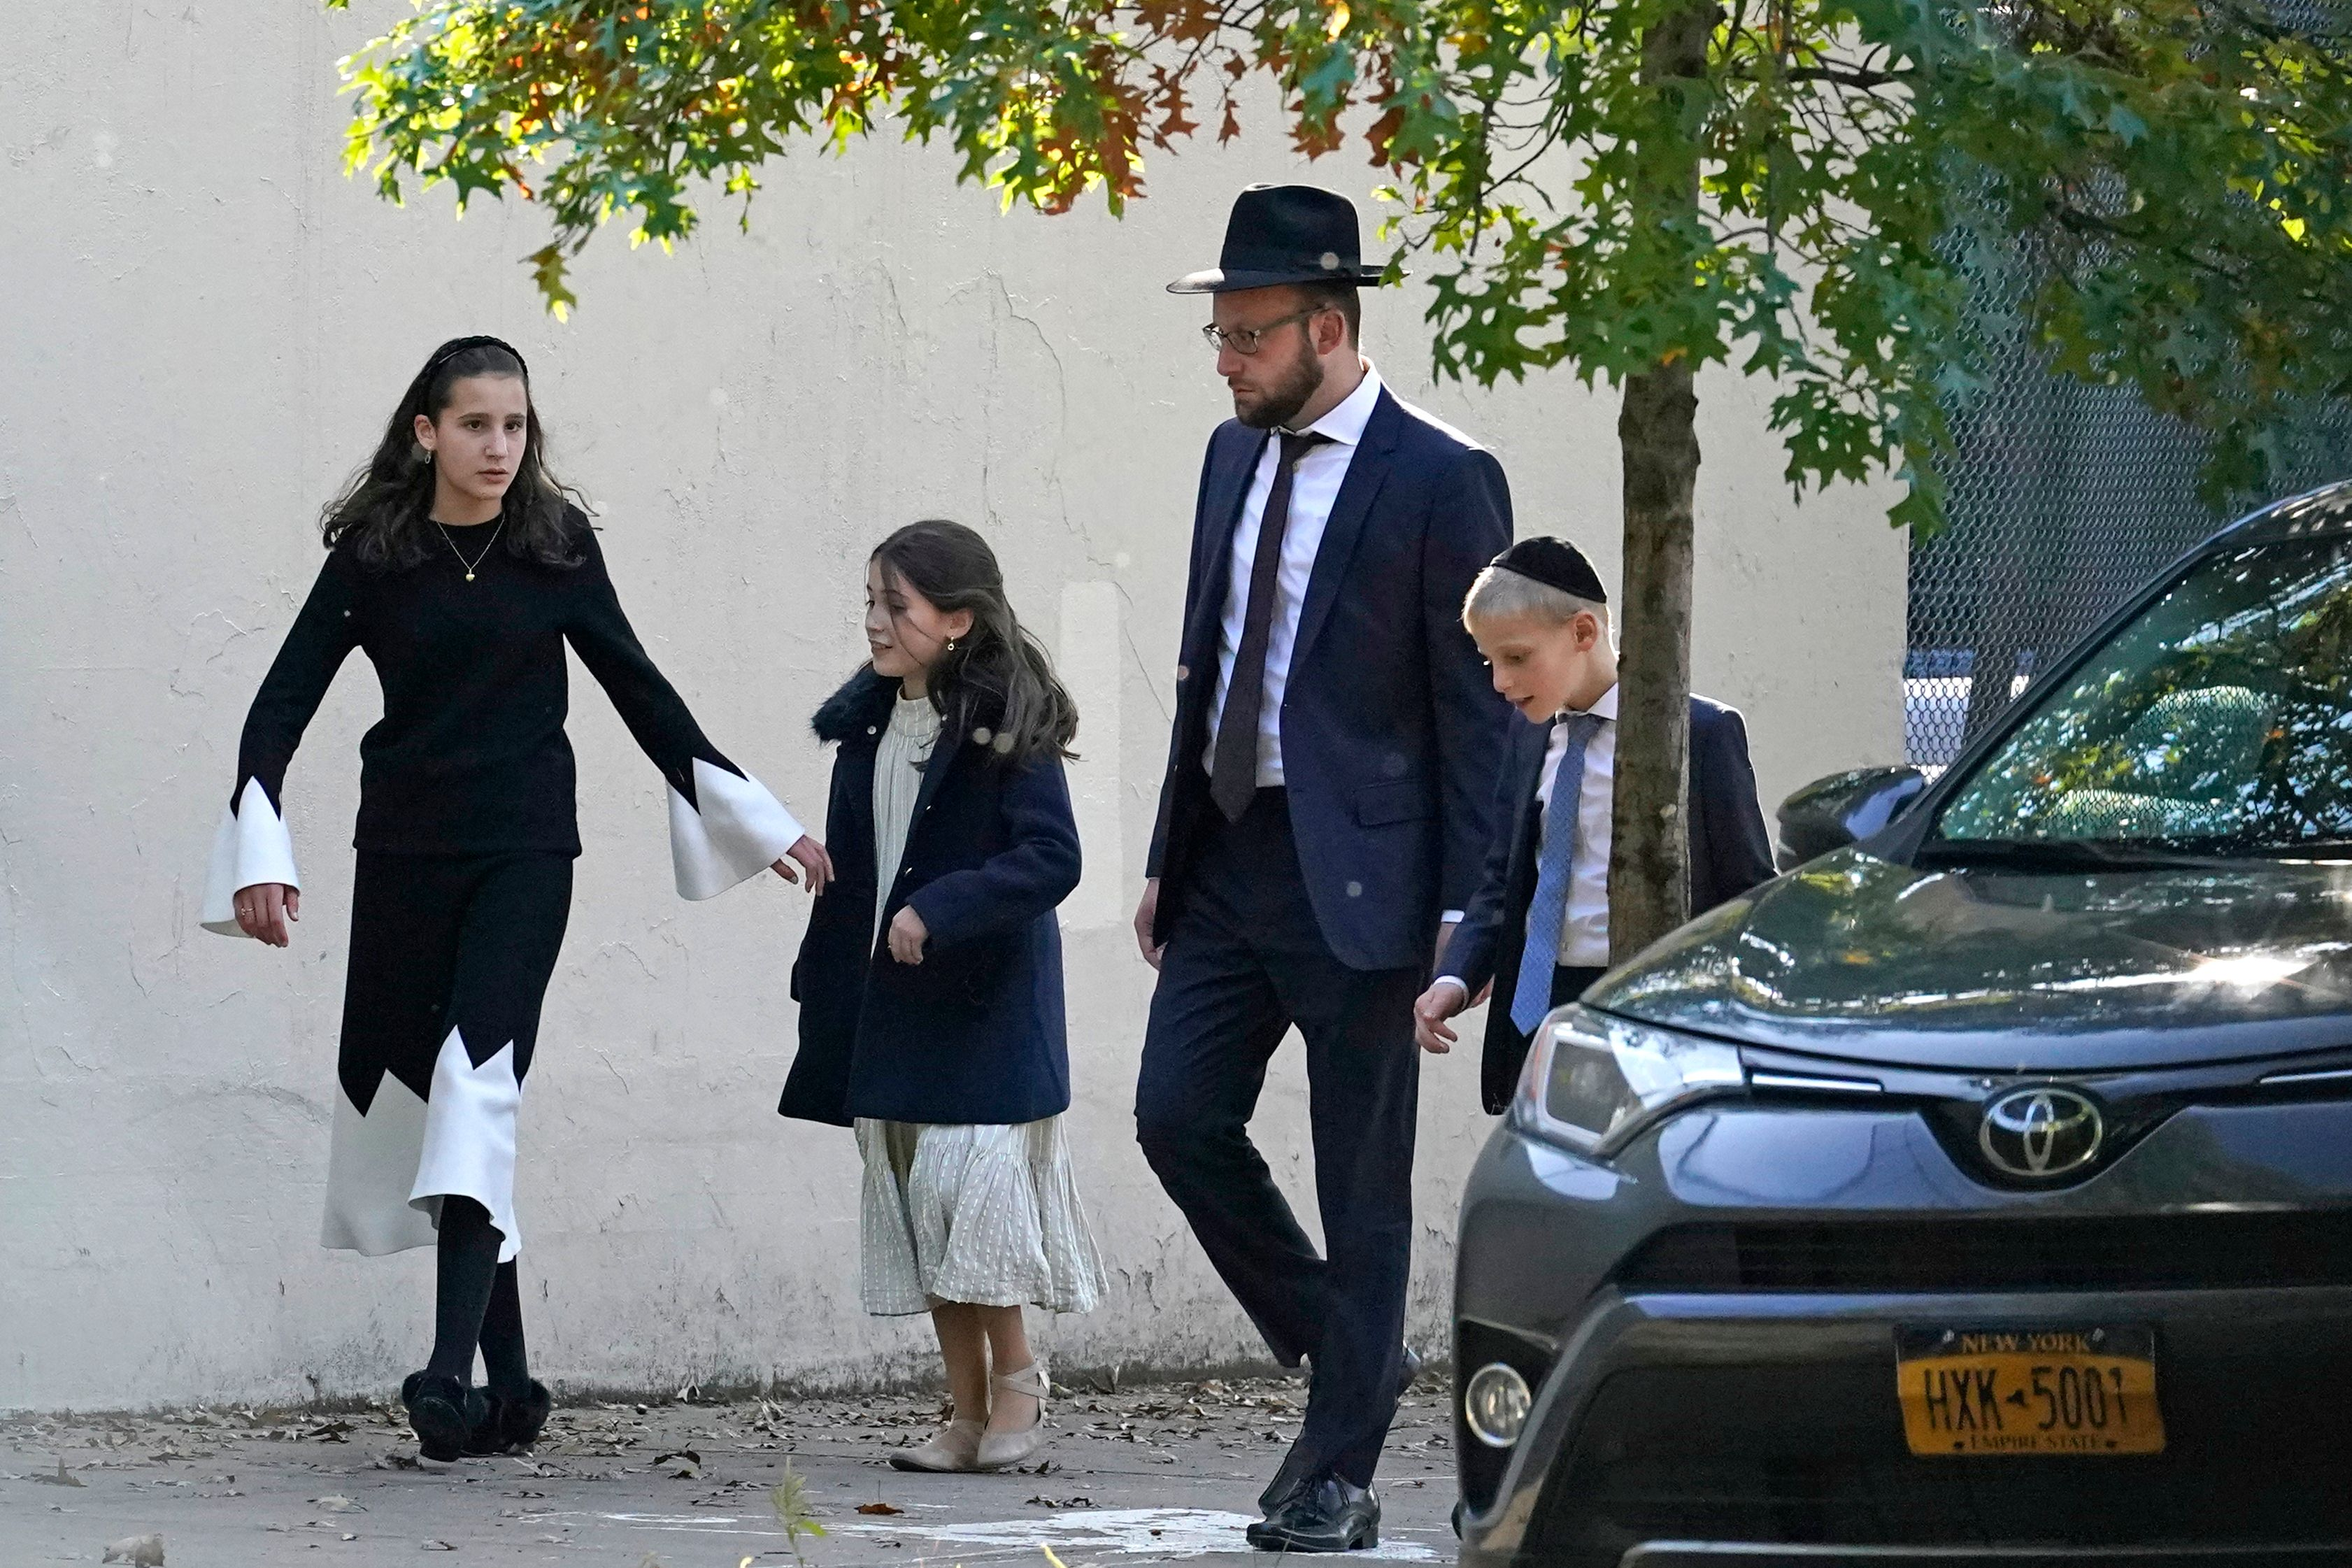 A man and his three children walk in Borough Park—no one is wearing masks.